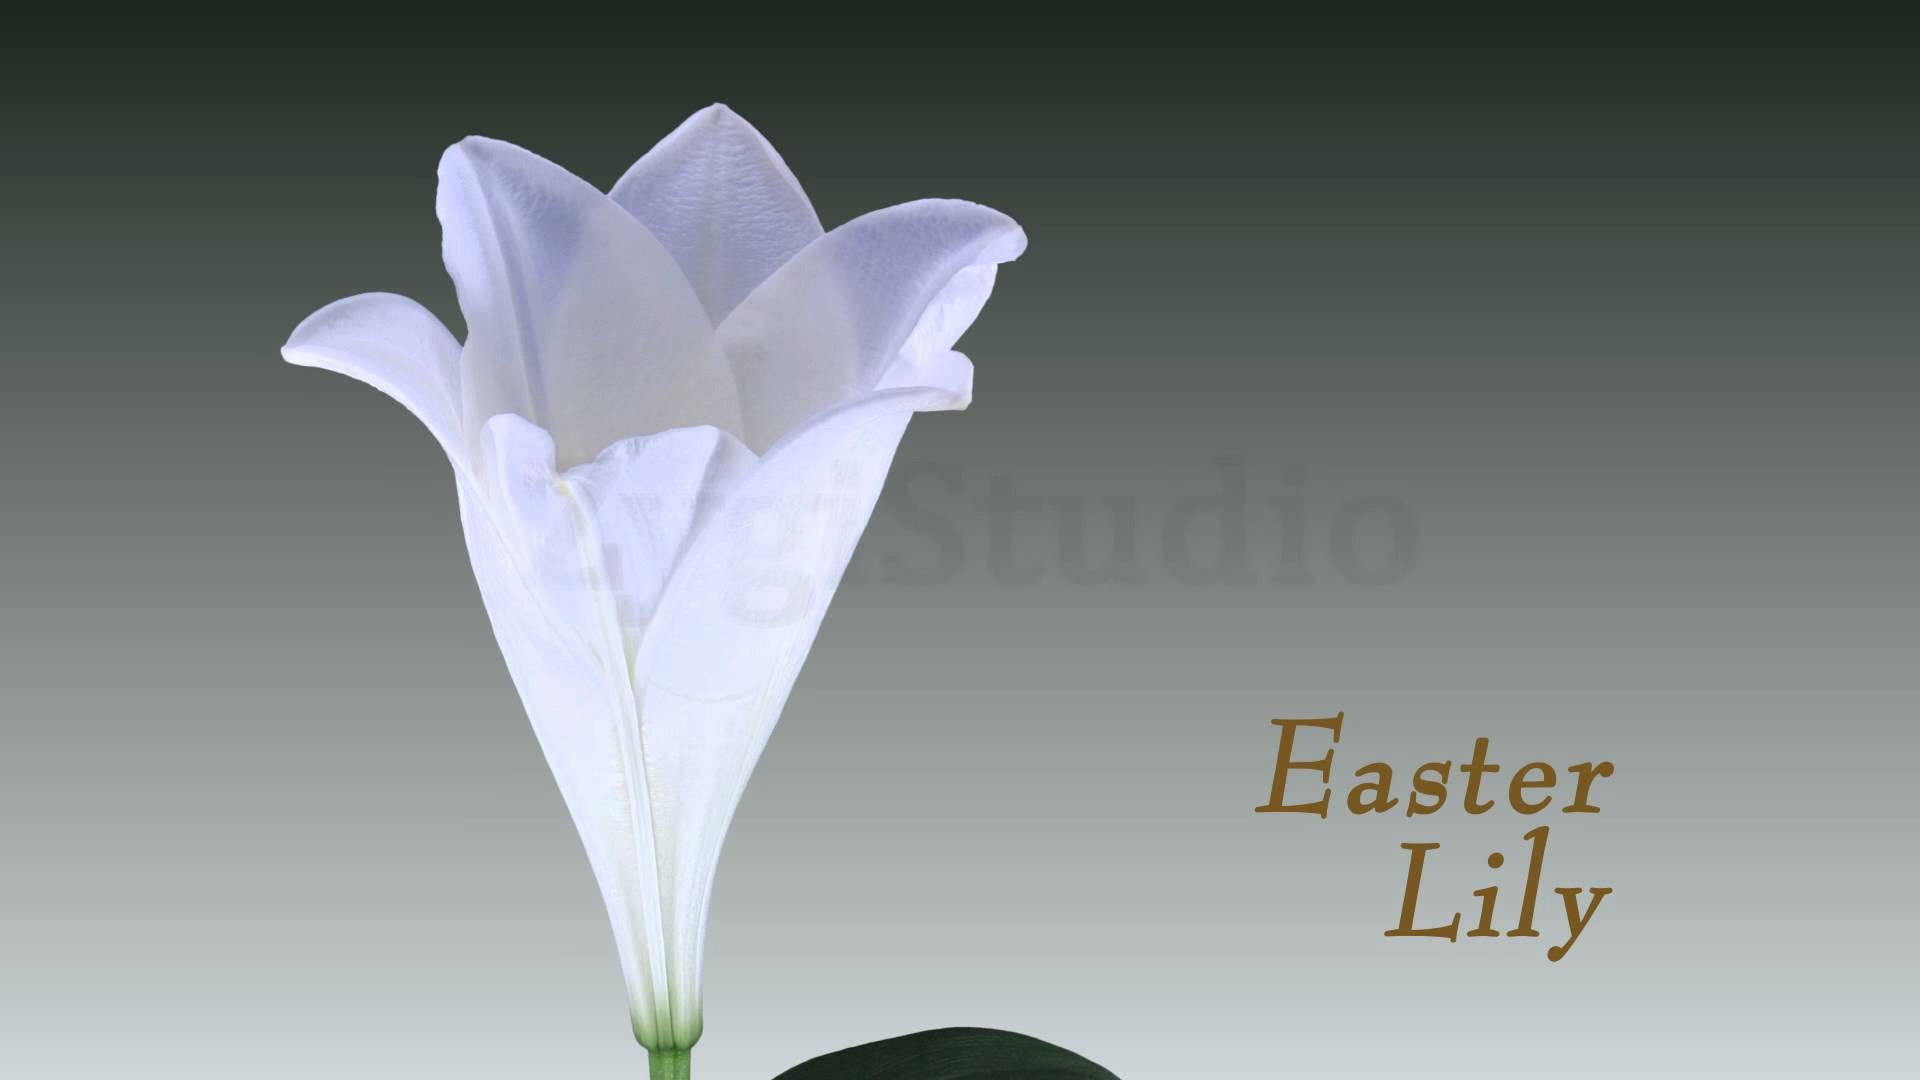 1920x1080 Time-lapse of Opening White Easter Lily.